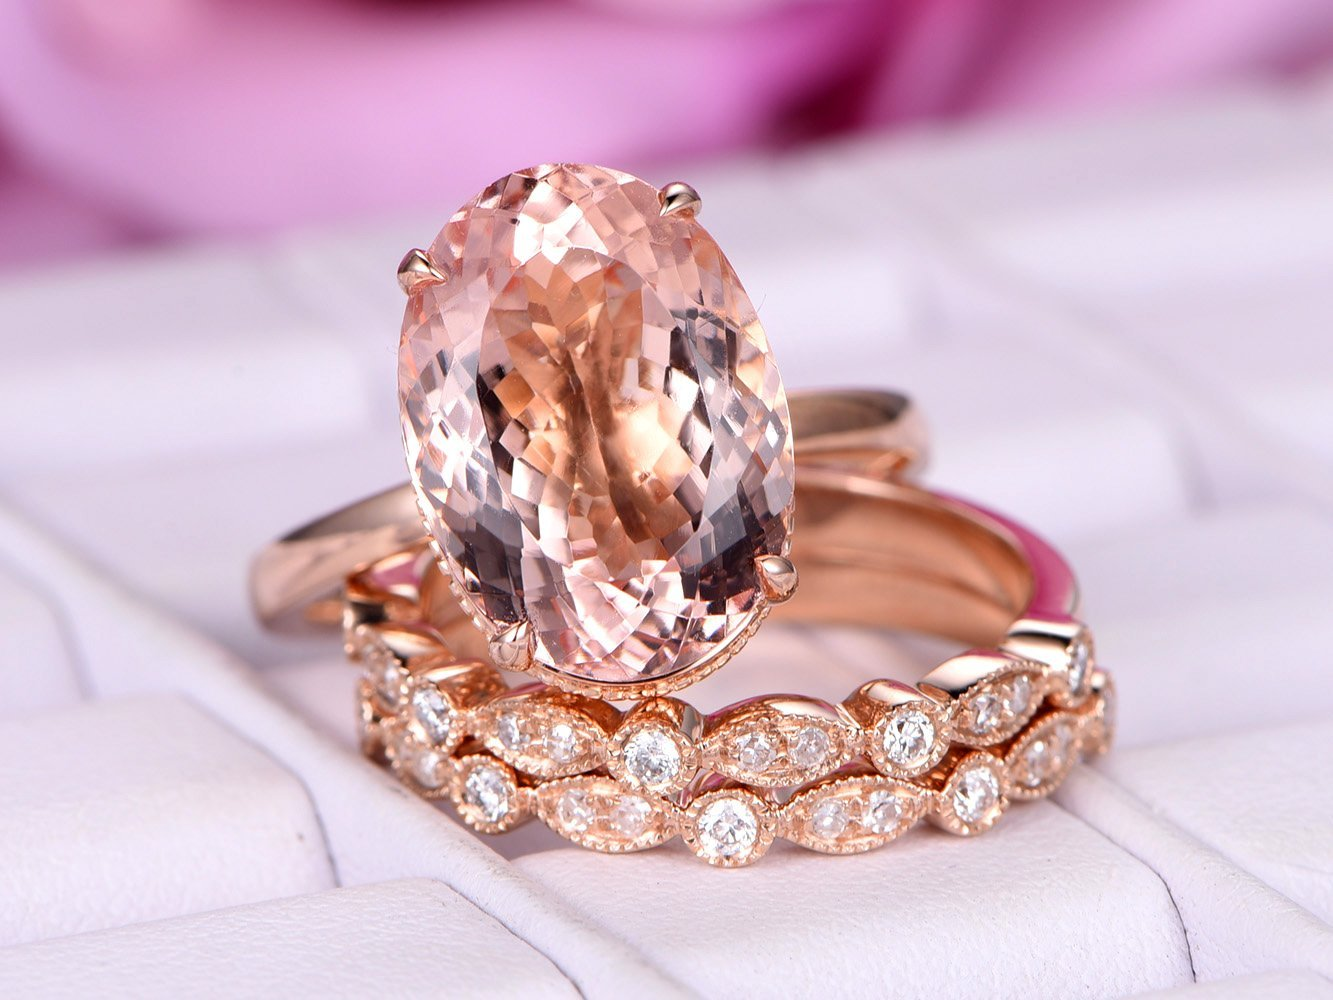 Amazon.com: Oval Morganite Engagement Ring Set Pave Diamond Wedding ...